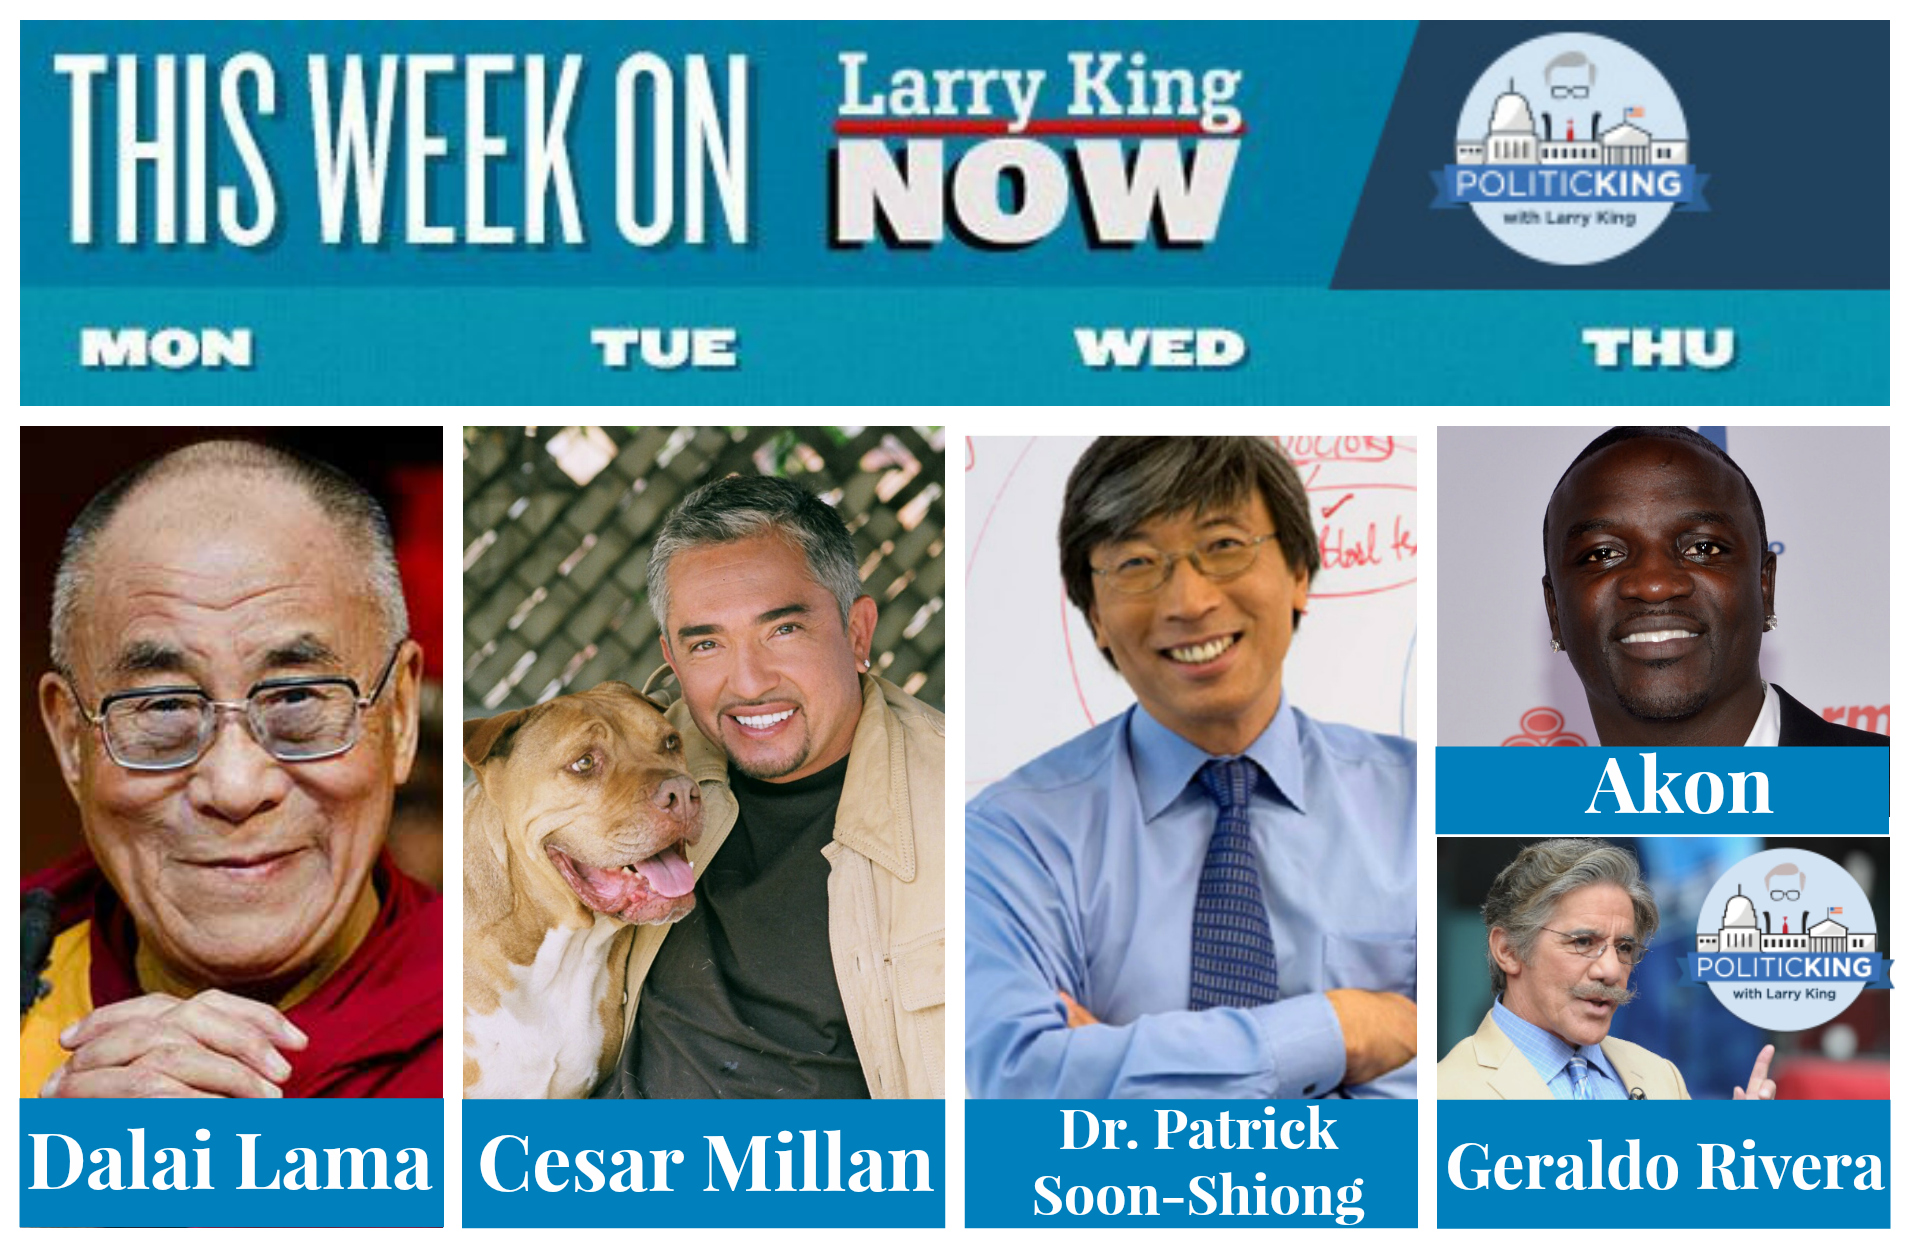 This Week on Larry King Now & PoliticKING - Dalai Lama, Cesar Millan, Dr. Patrick Soon-Shiong, Akon, Geraldo Rivera